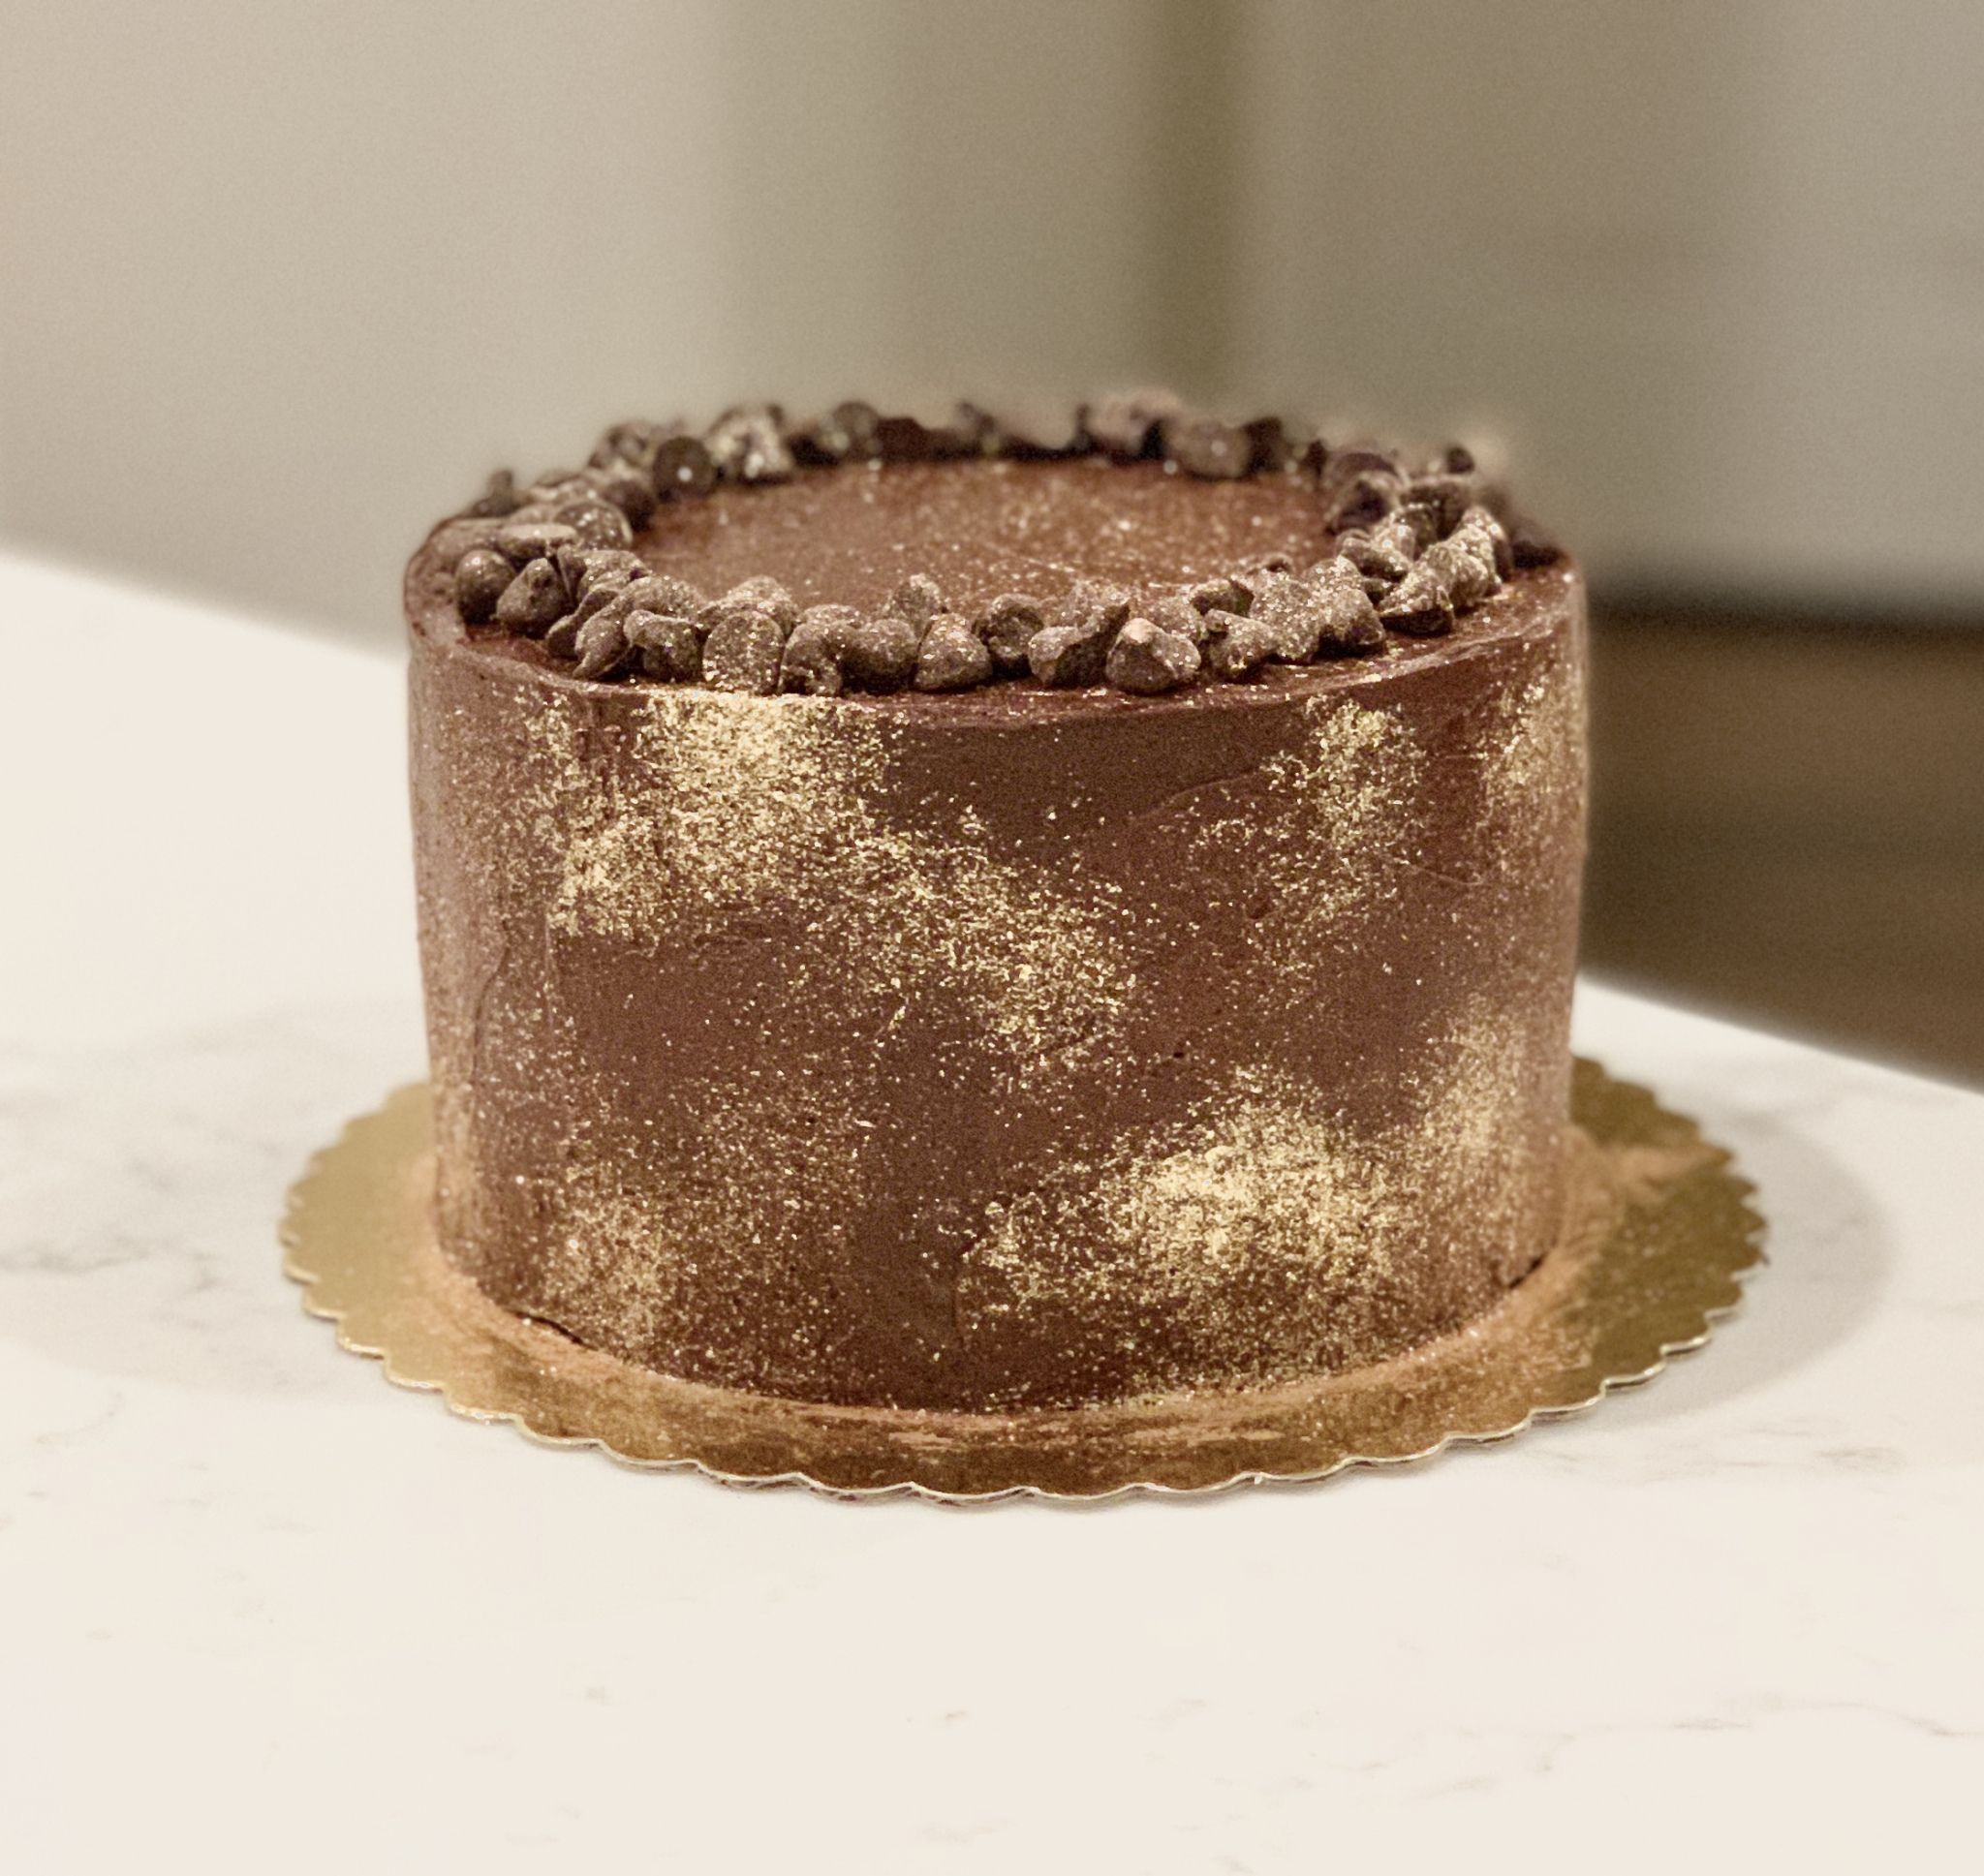 The January Mocha Blalock Bakes In 2020 Unsweetened Chocolate Chocolate Espresso Cake Chocolate Covered Coffee Beans